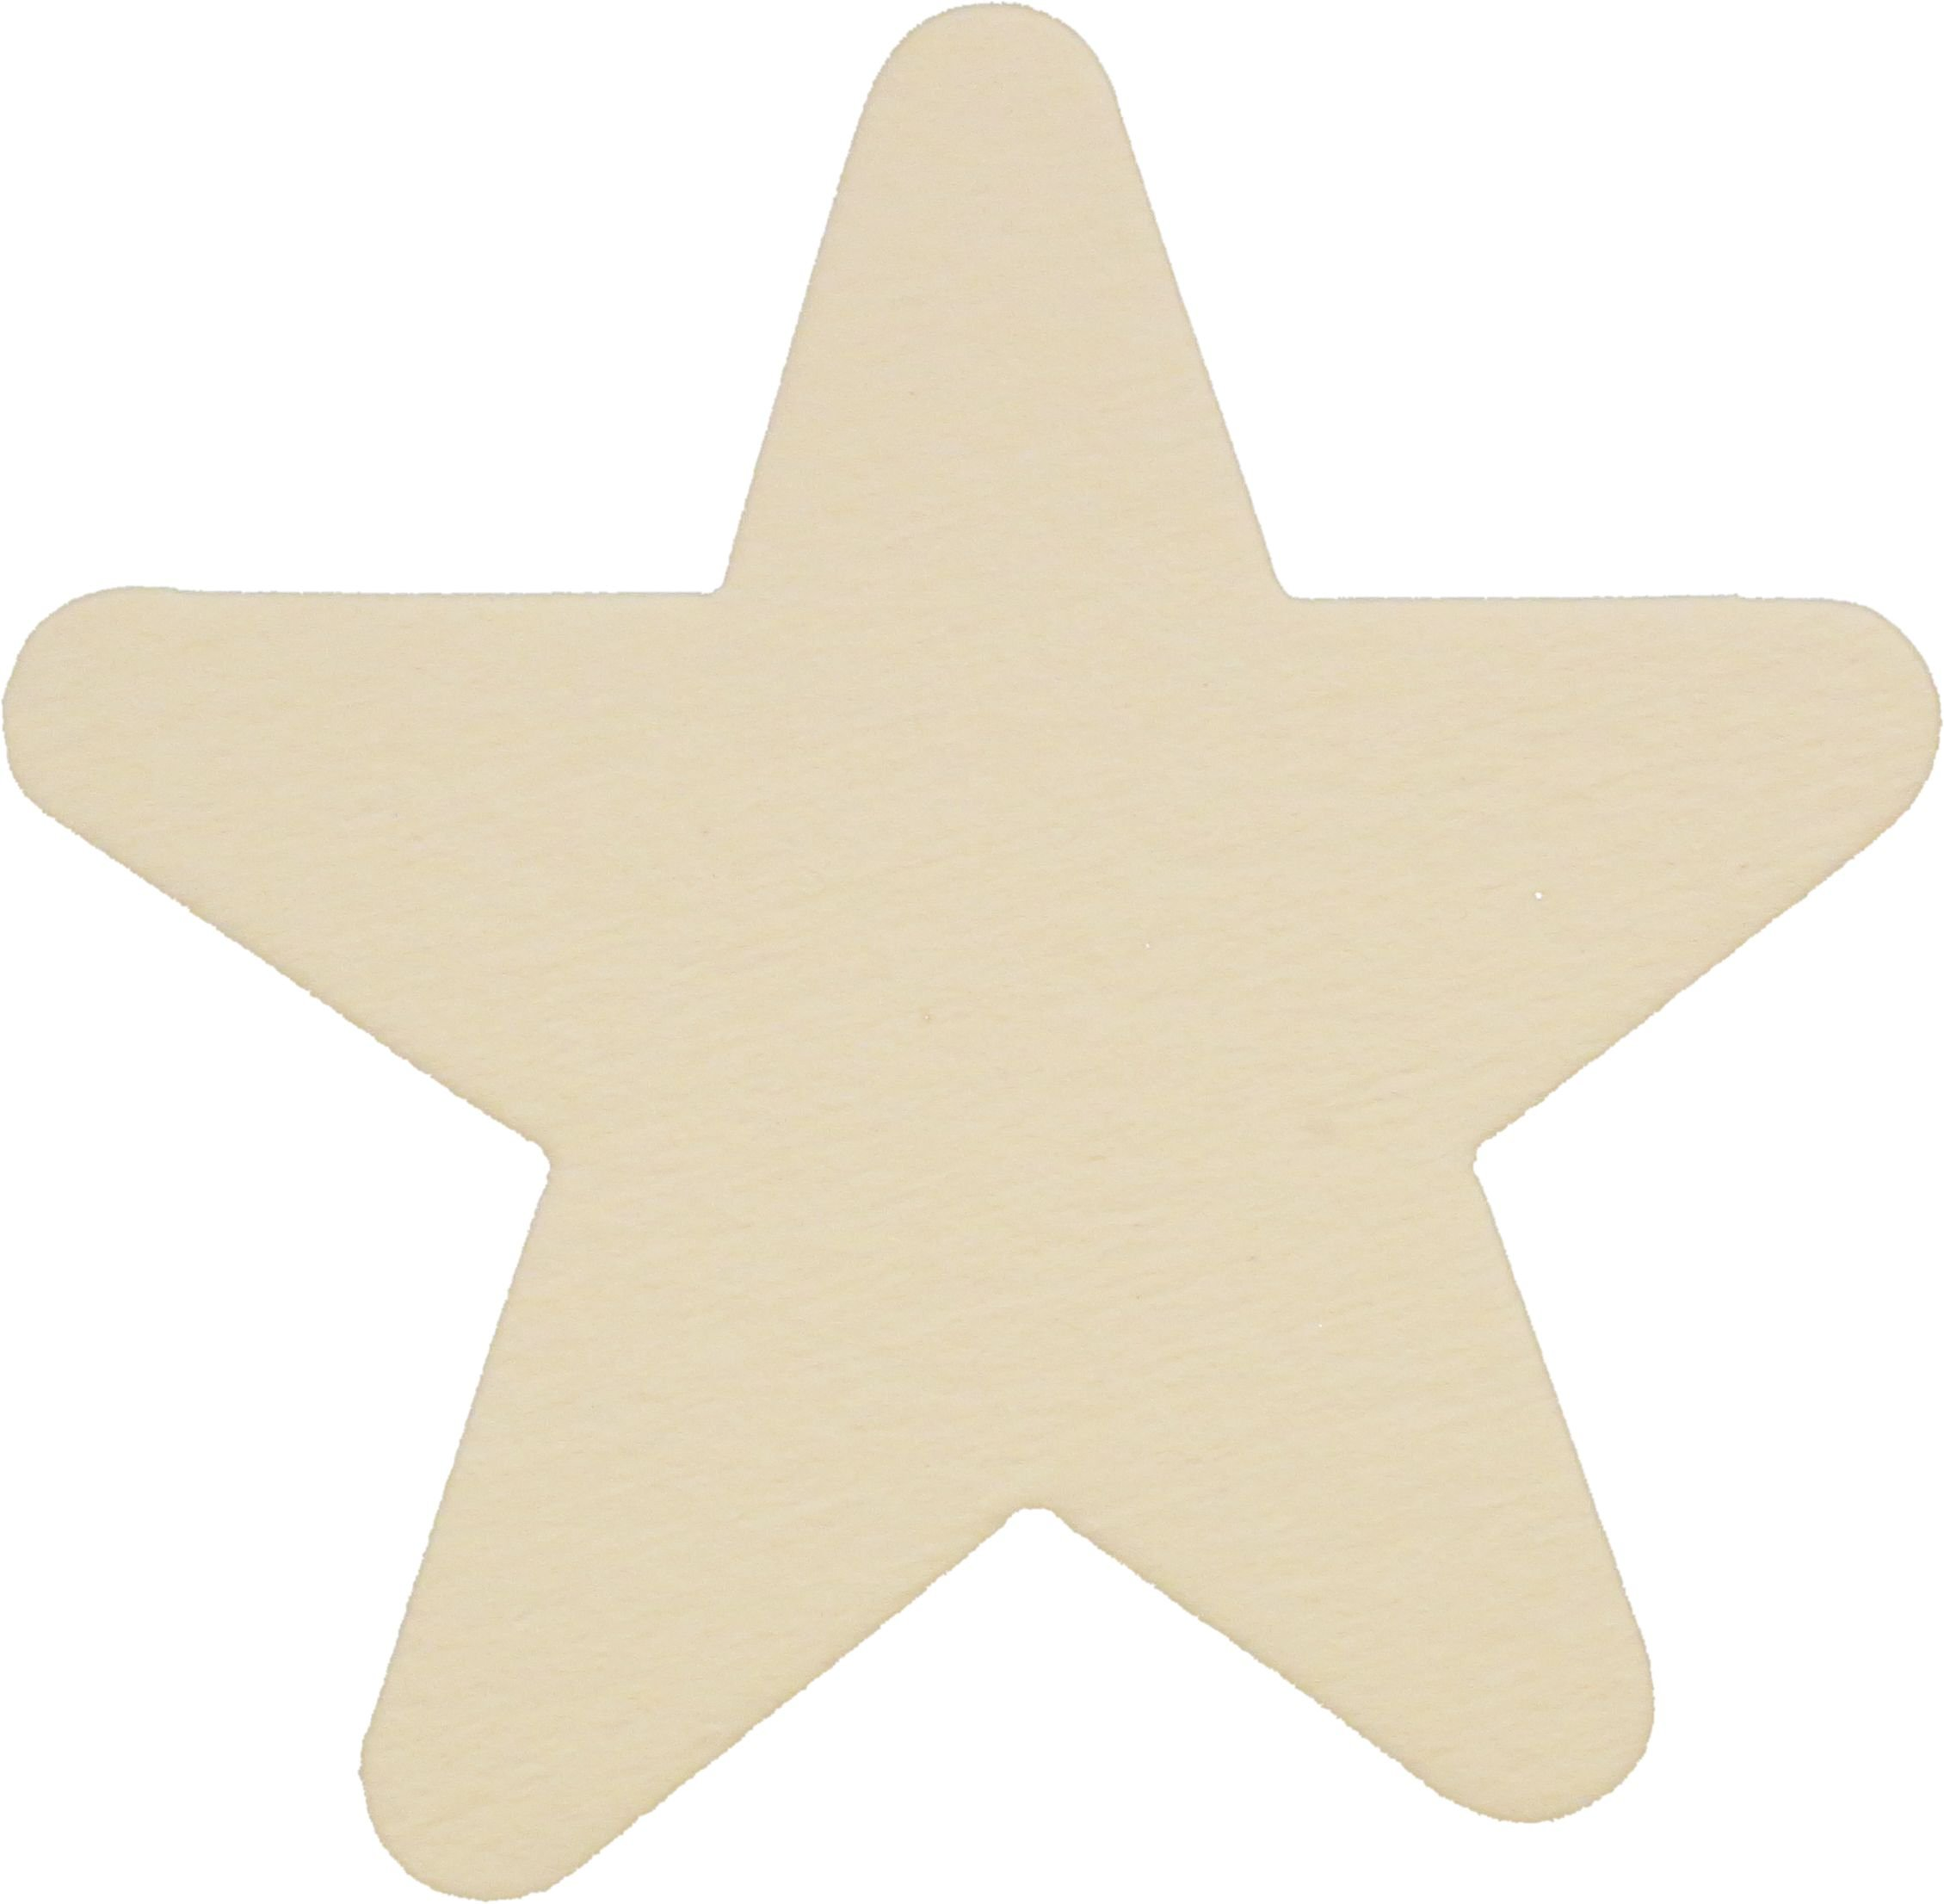 Set of Stars on Star Air Fresheners, Cedarwood Essential Oil by Eclectic Lady (Image #3)